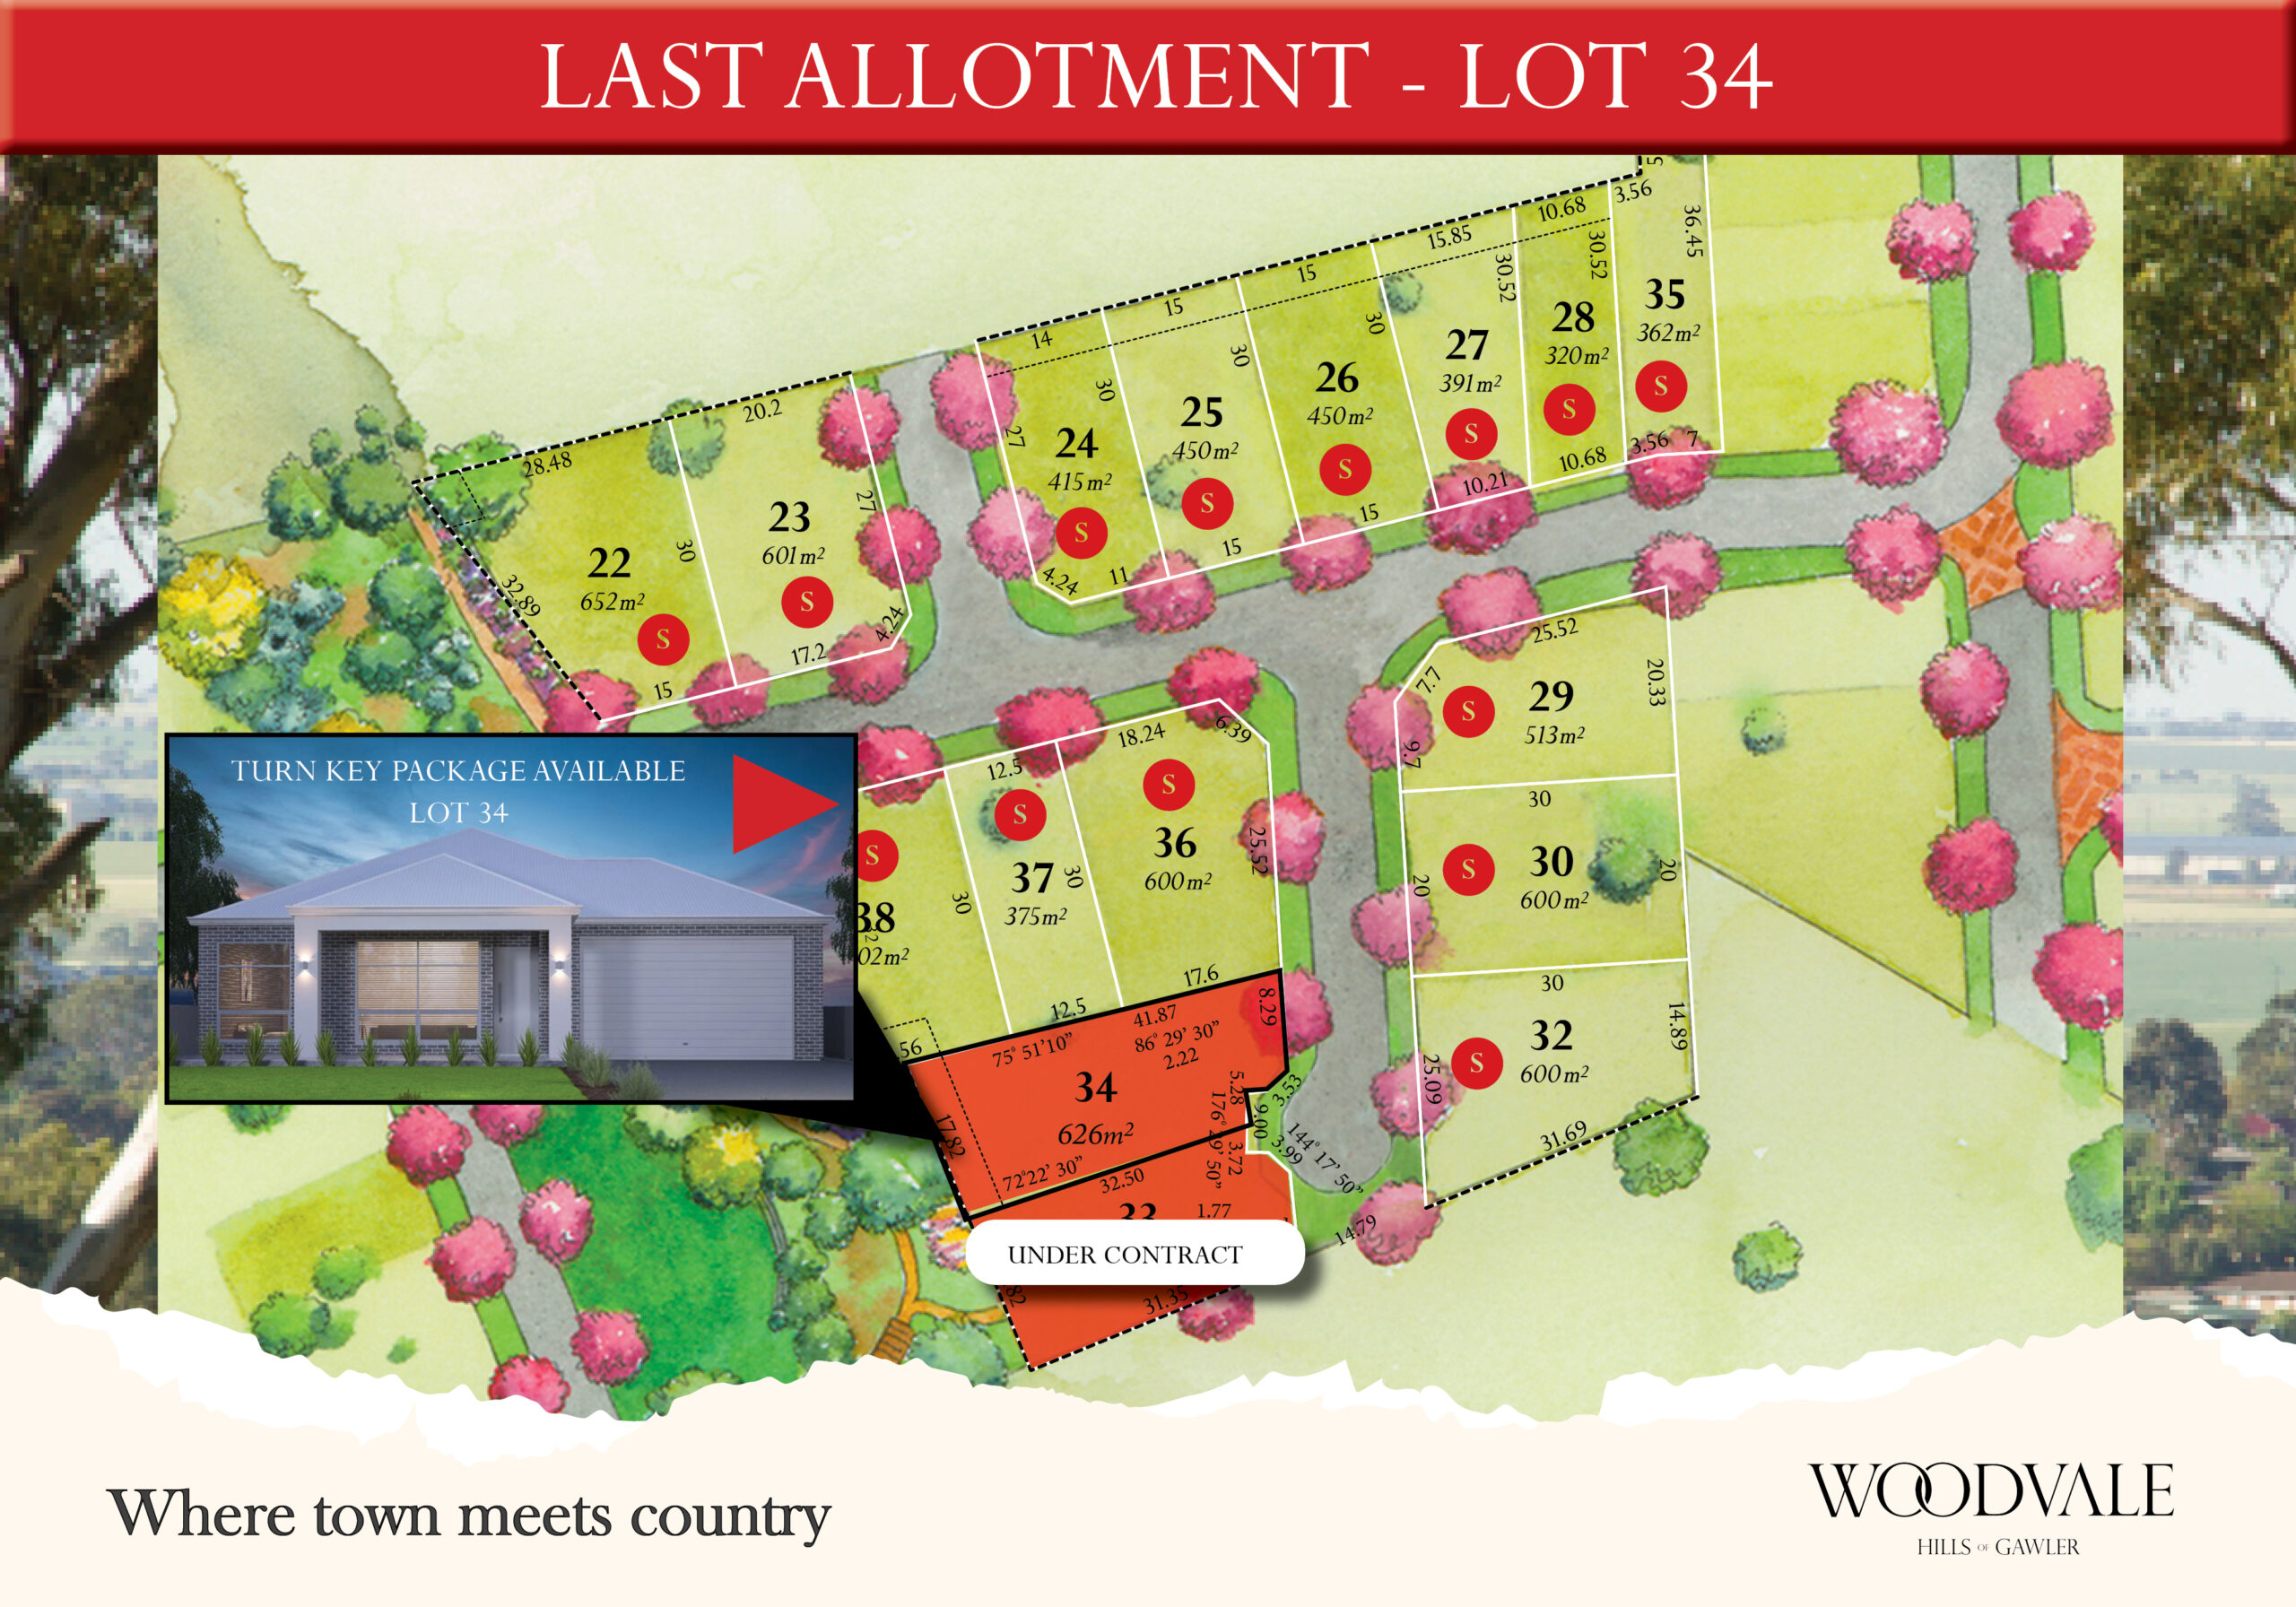 Land for sale at Gawler near Adelaide - Woodvale Stage 3